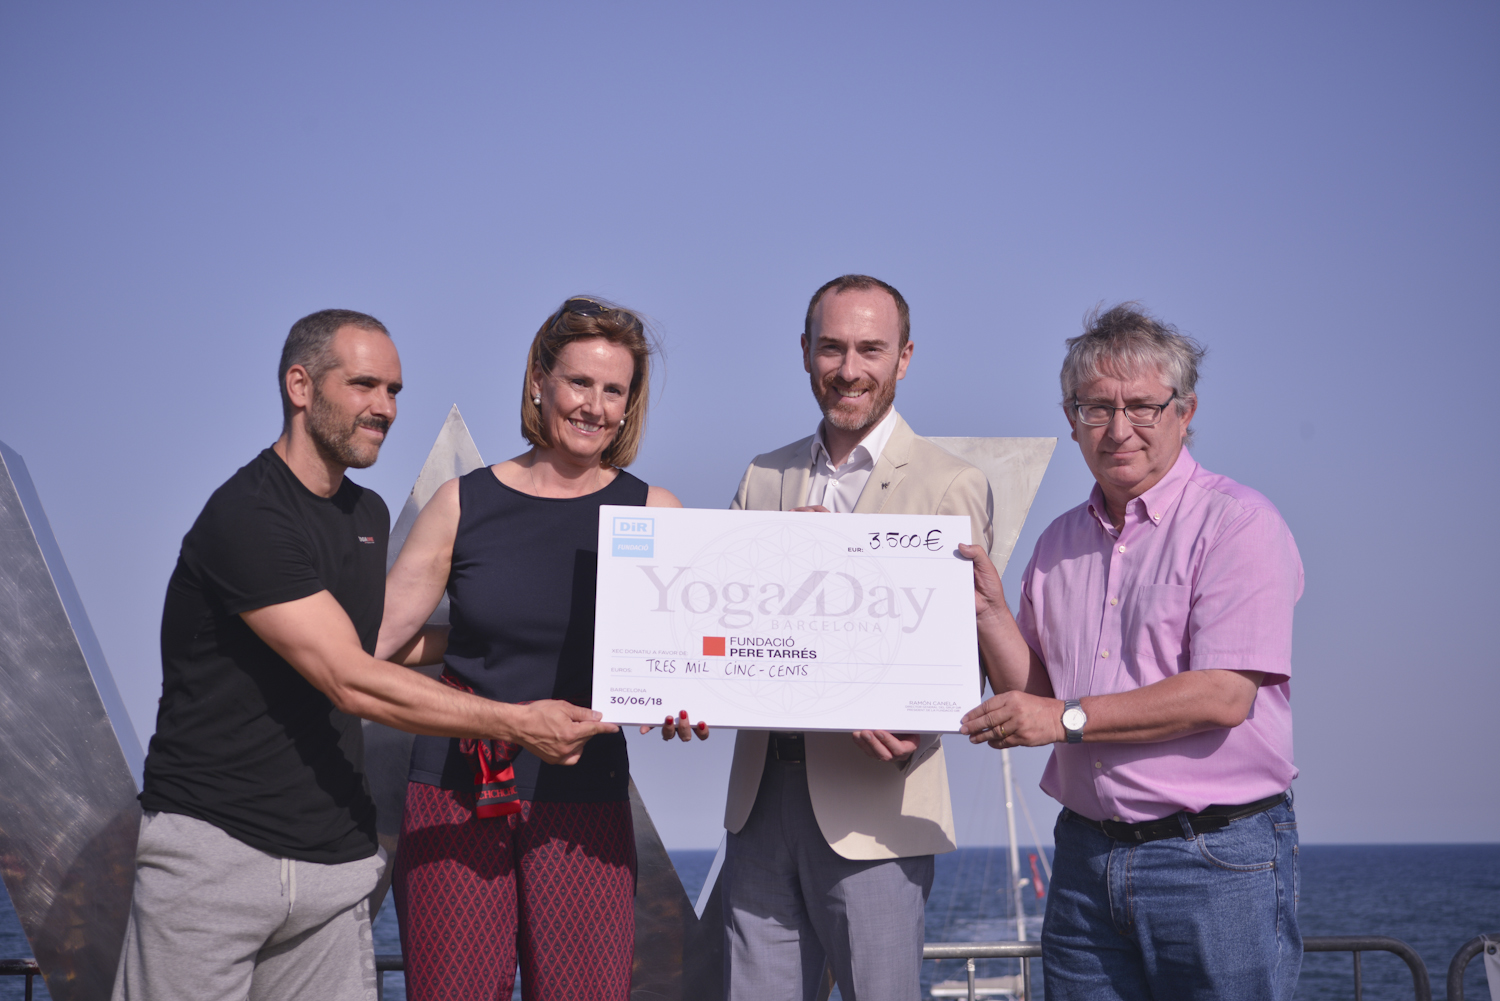 Yoga Day by DiR 2018 Taló solidari Pere Tarres